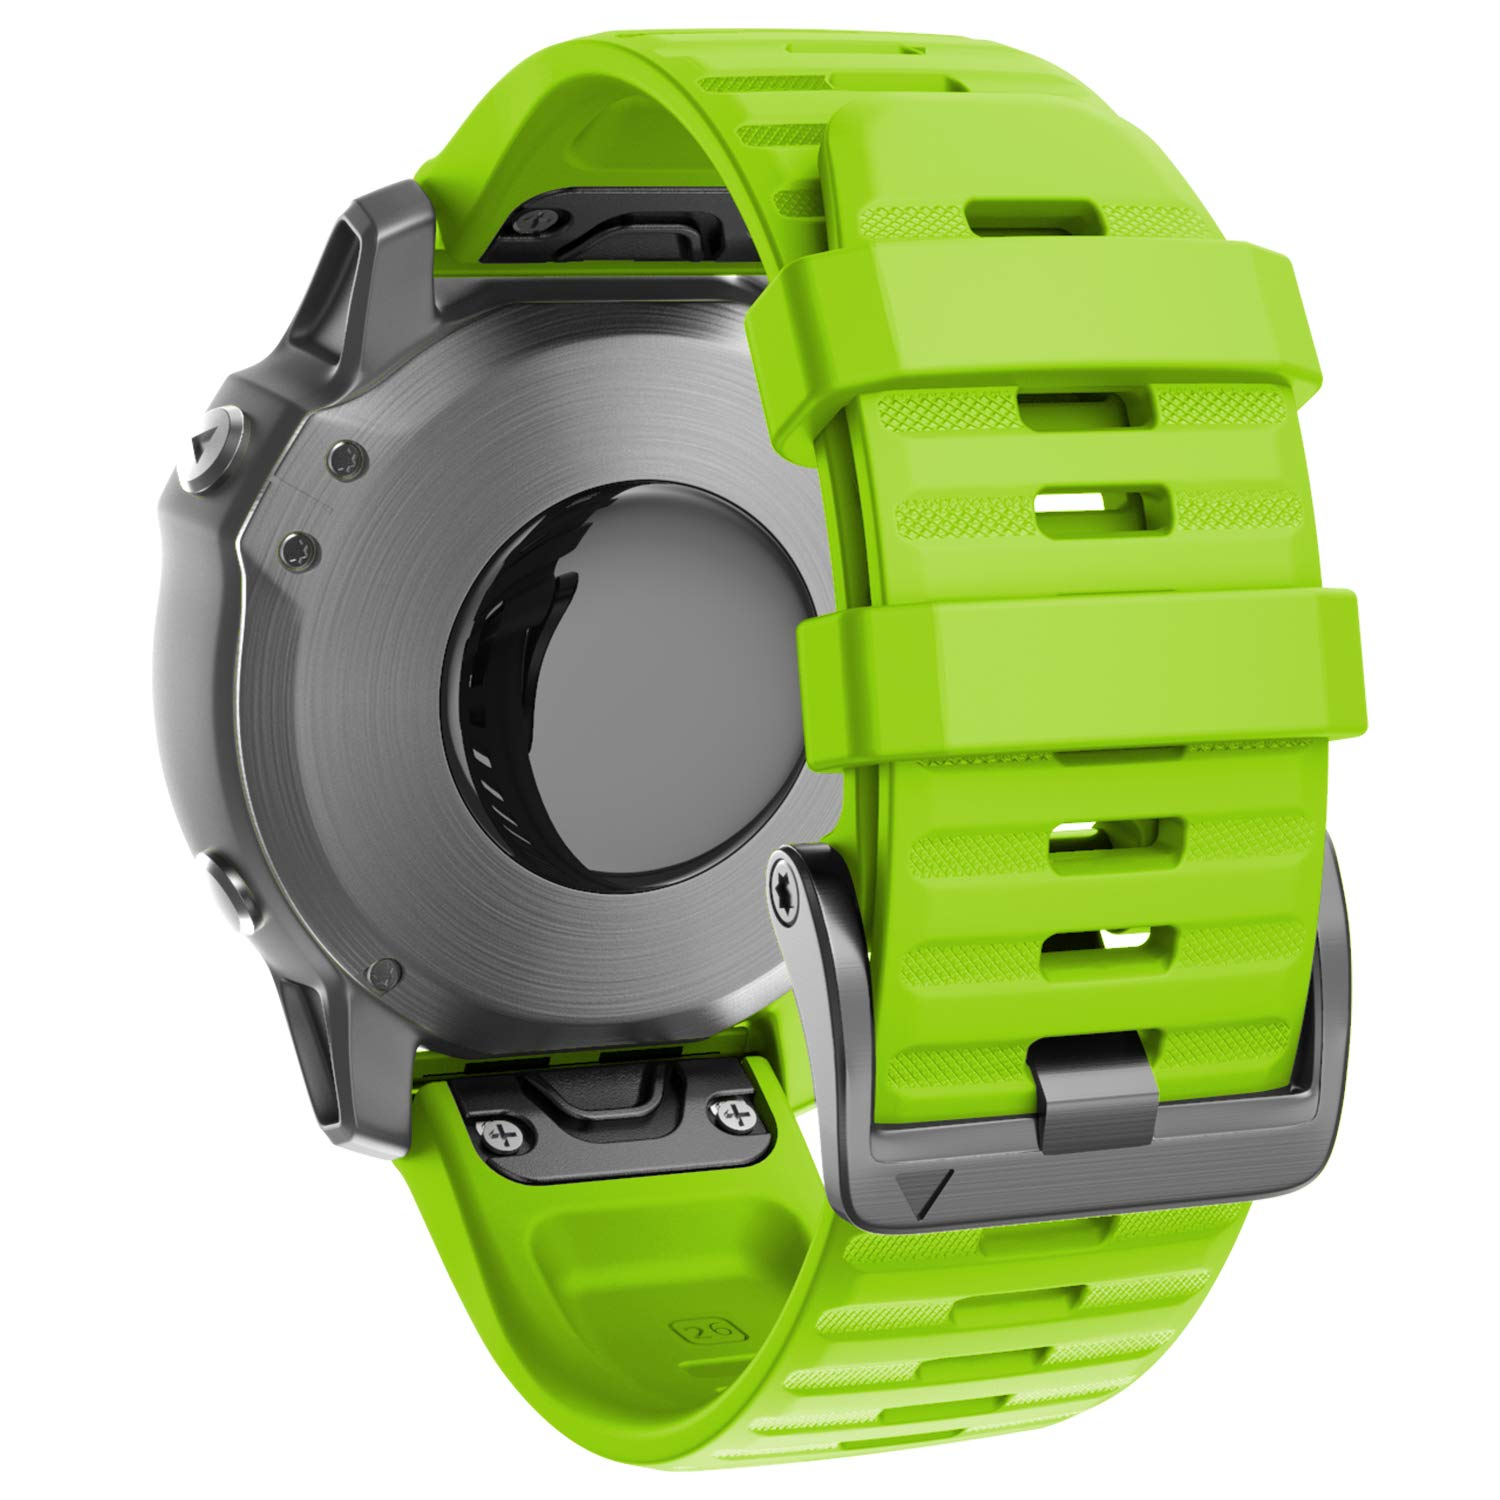 ANCOOL Compatible with Fenix 6X Bands 26MM Easy-fit Soft Silicone Watch Band Replacement for Fenix 5X/Fenix 5X Plus/Fenix 3/Fenix 3HR/Fenix 6X Pro Smartwatches, Green